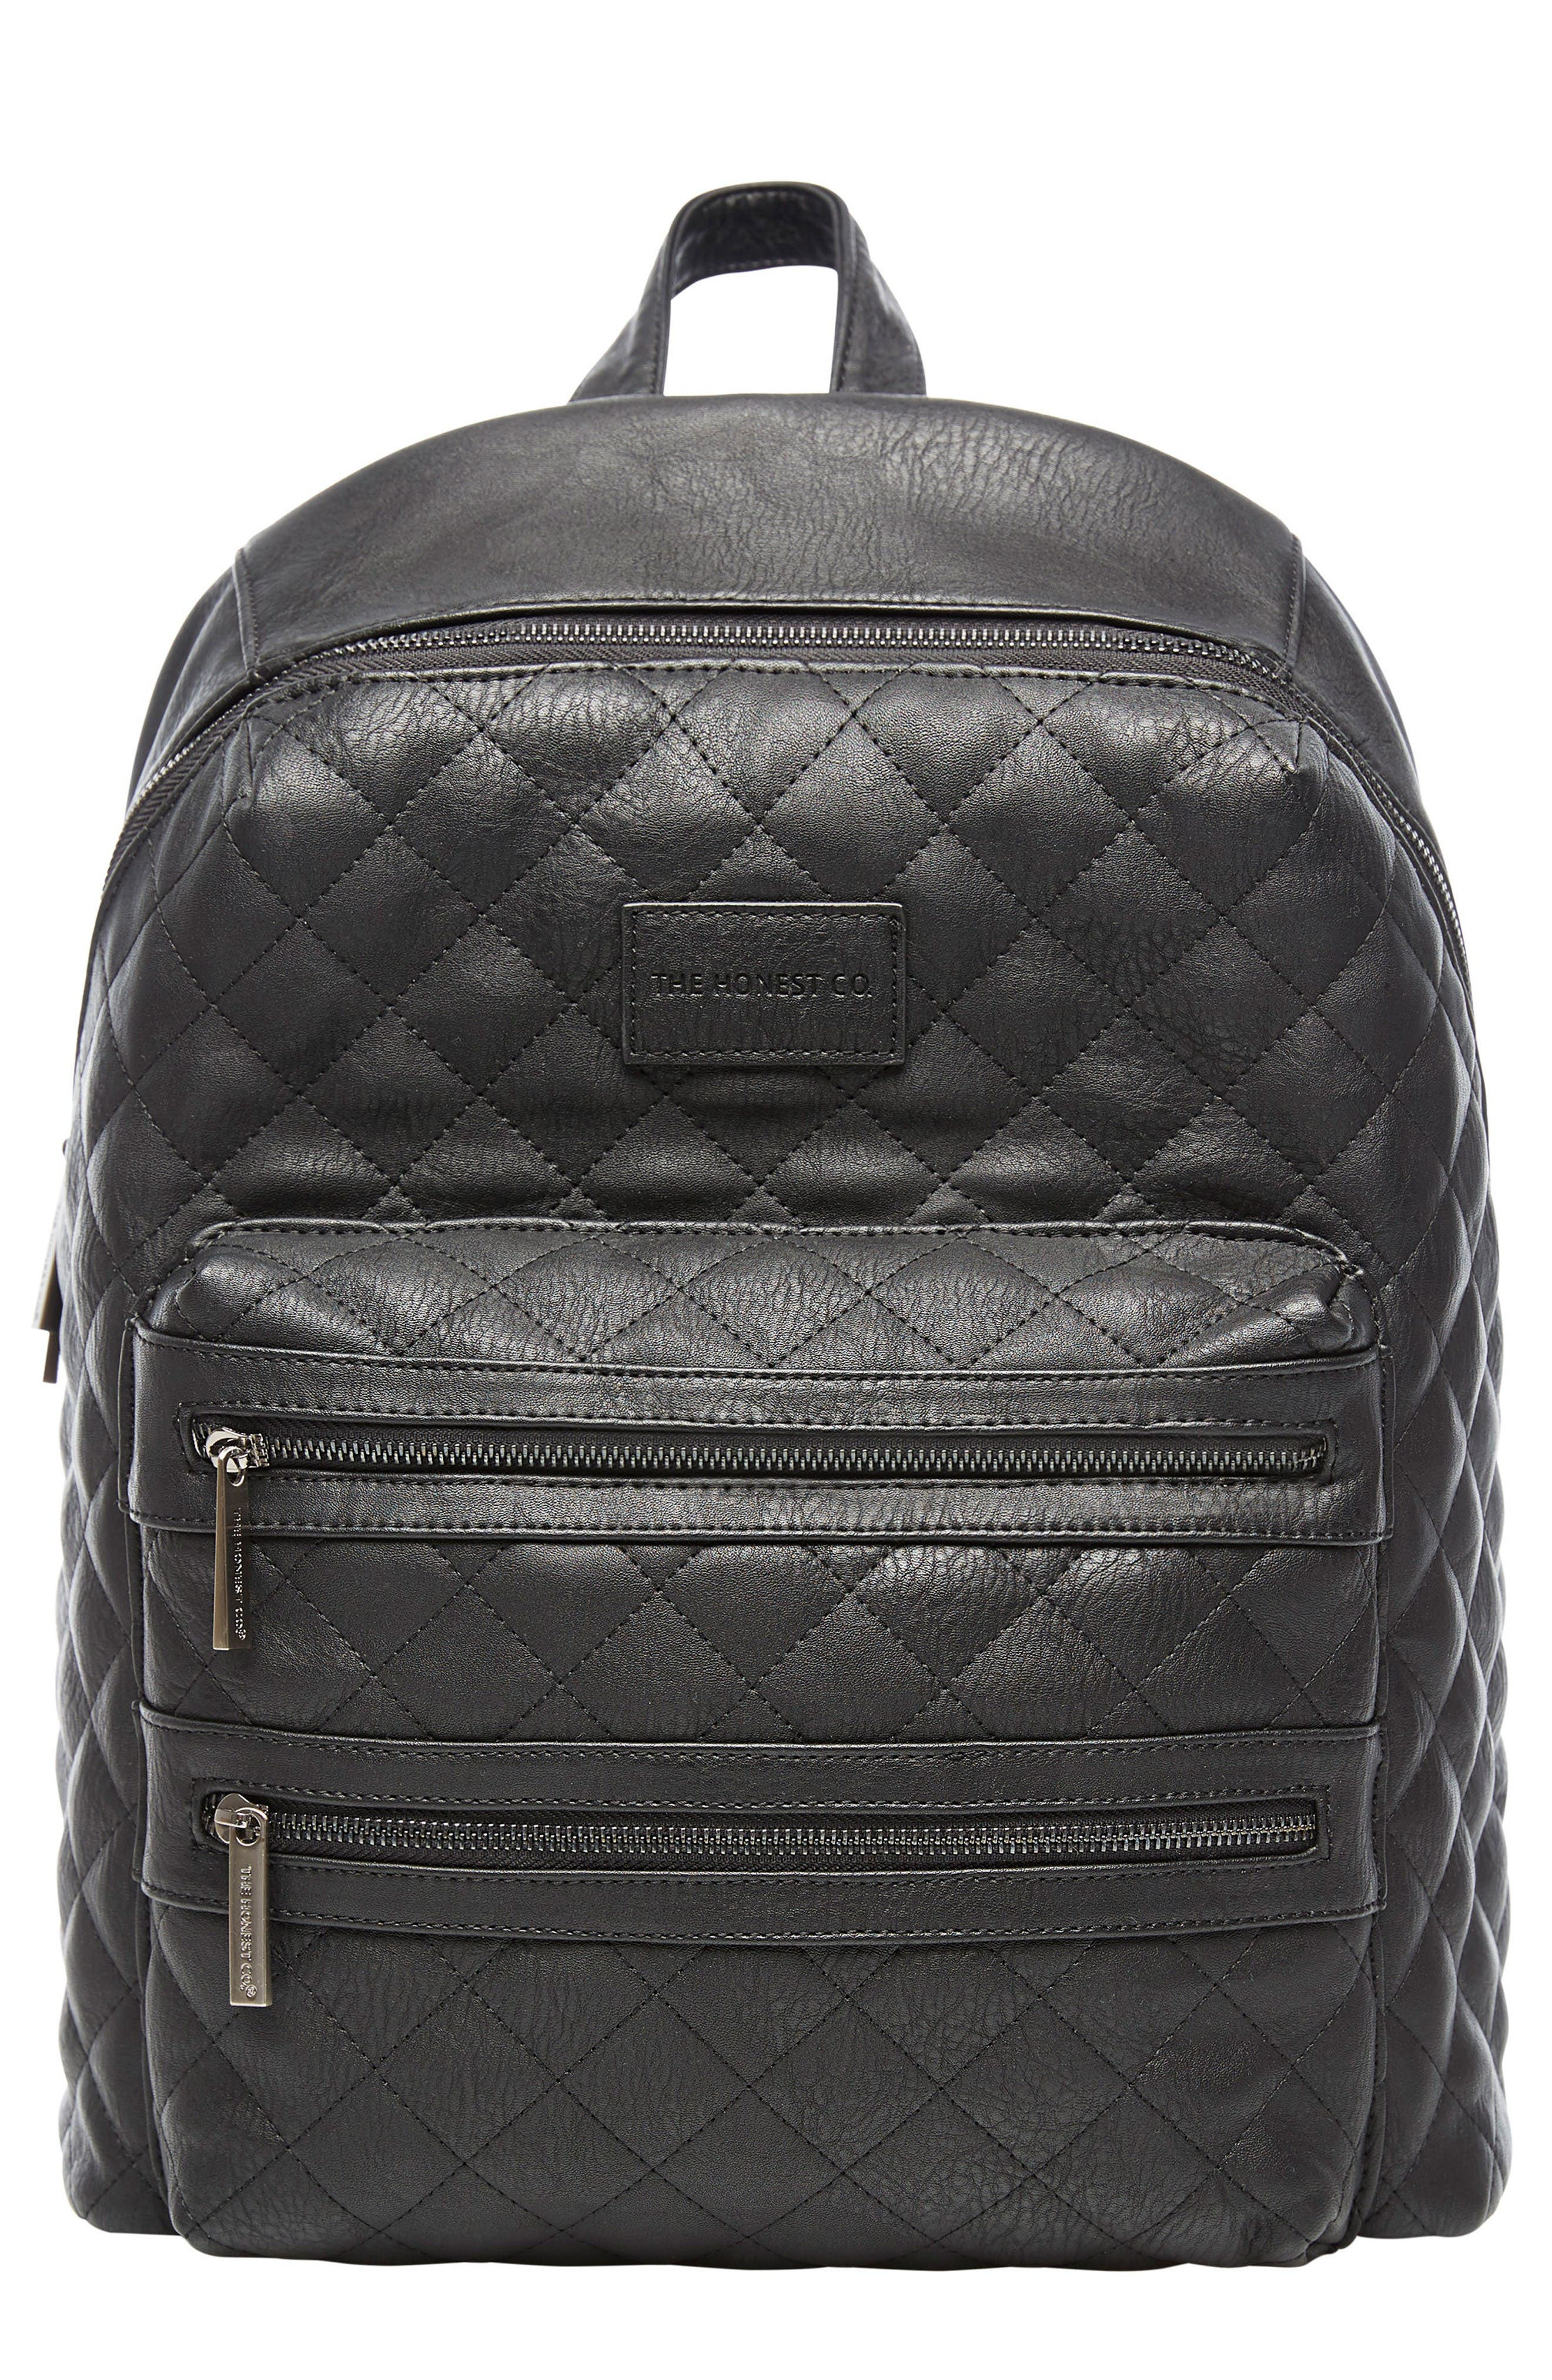 Alternate Image 1 Selected - The Honest Company City Quilted Faux Leather Diaper Backpack